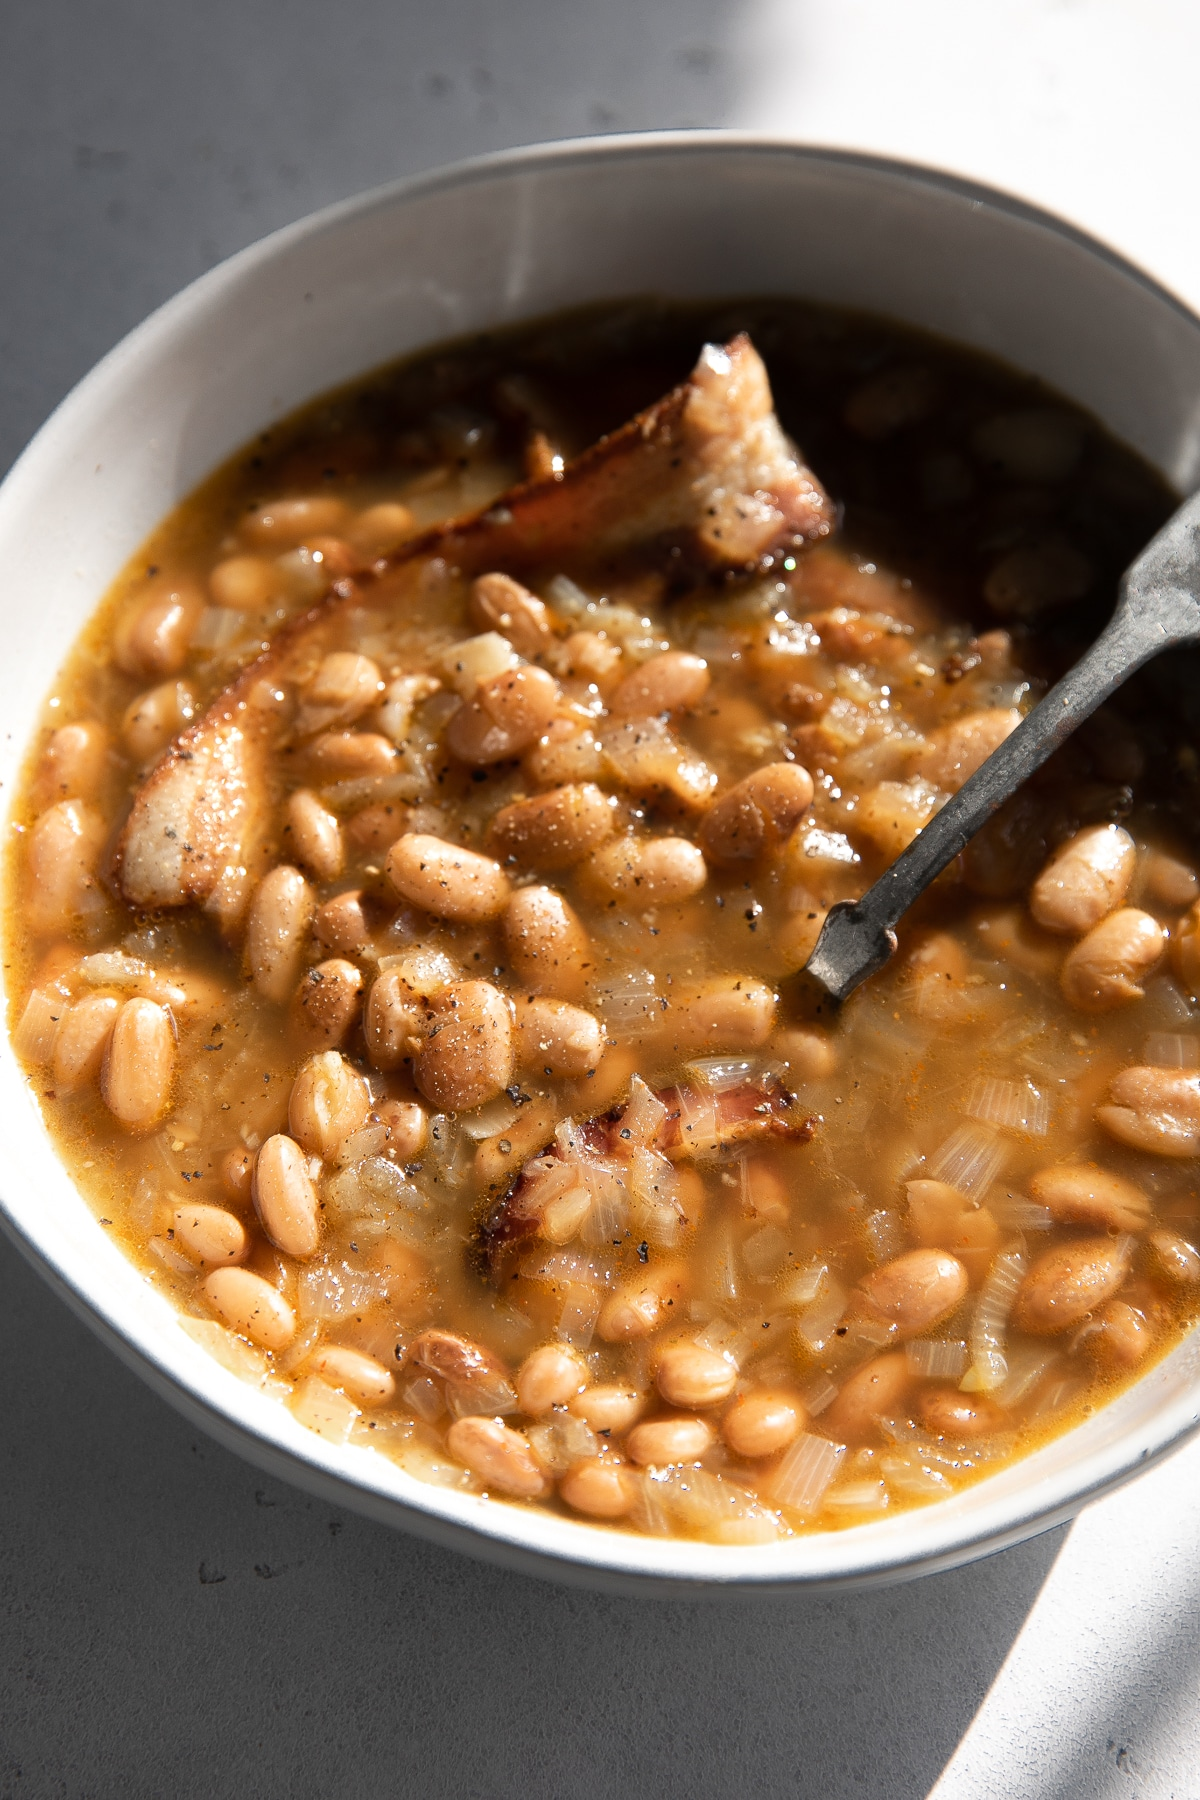 Wide and shallow soup bowl filled with pinto beans simmered with onions, bacon, and herbs.